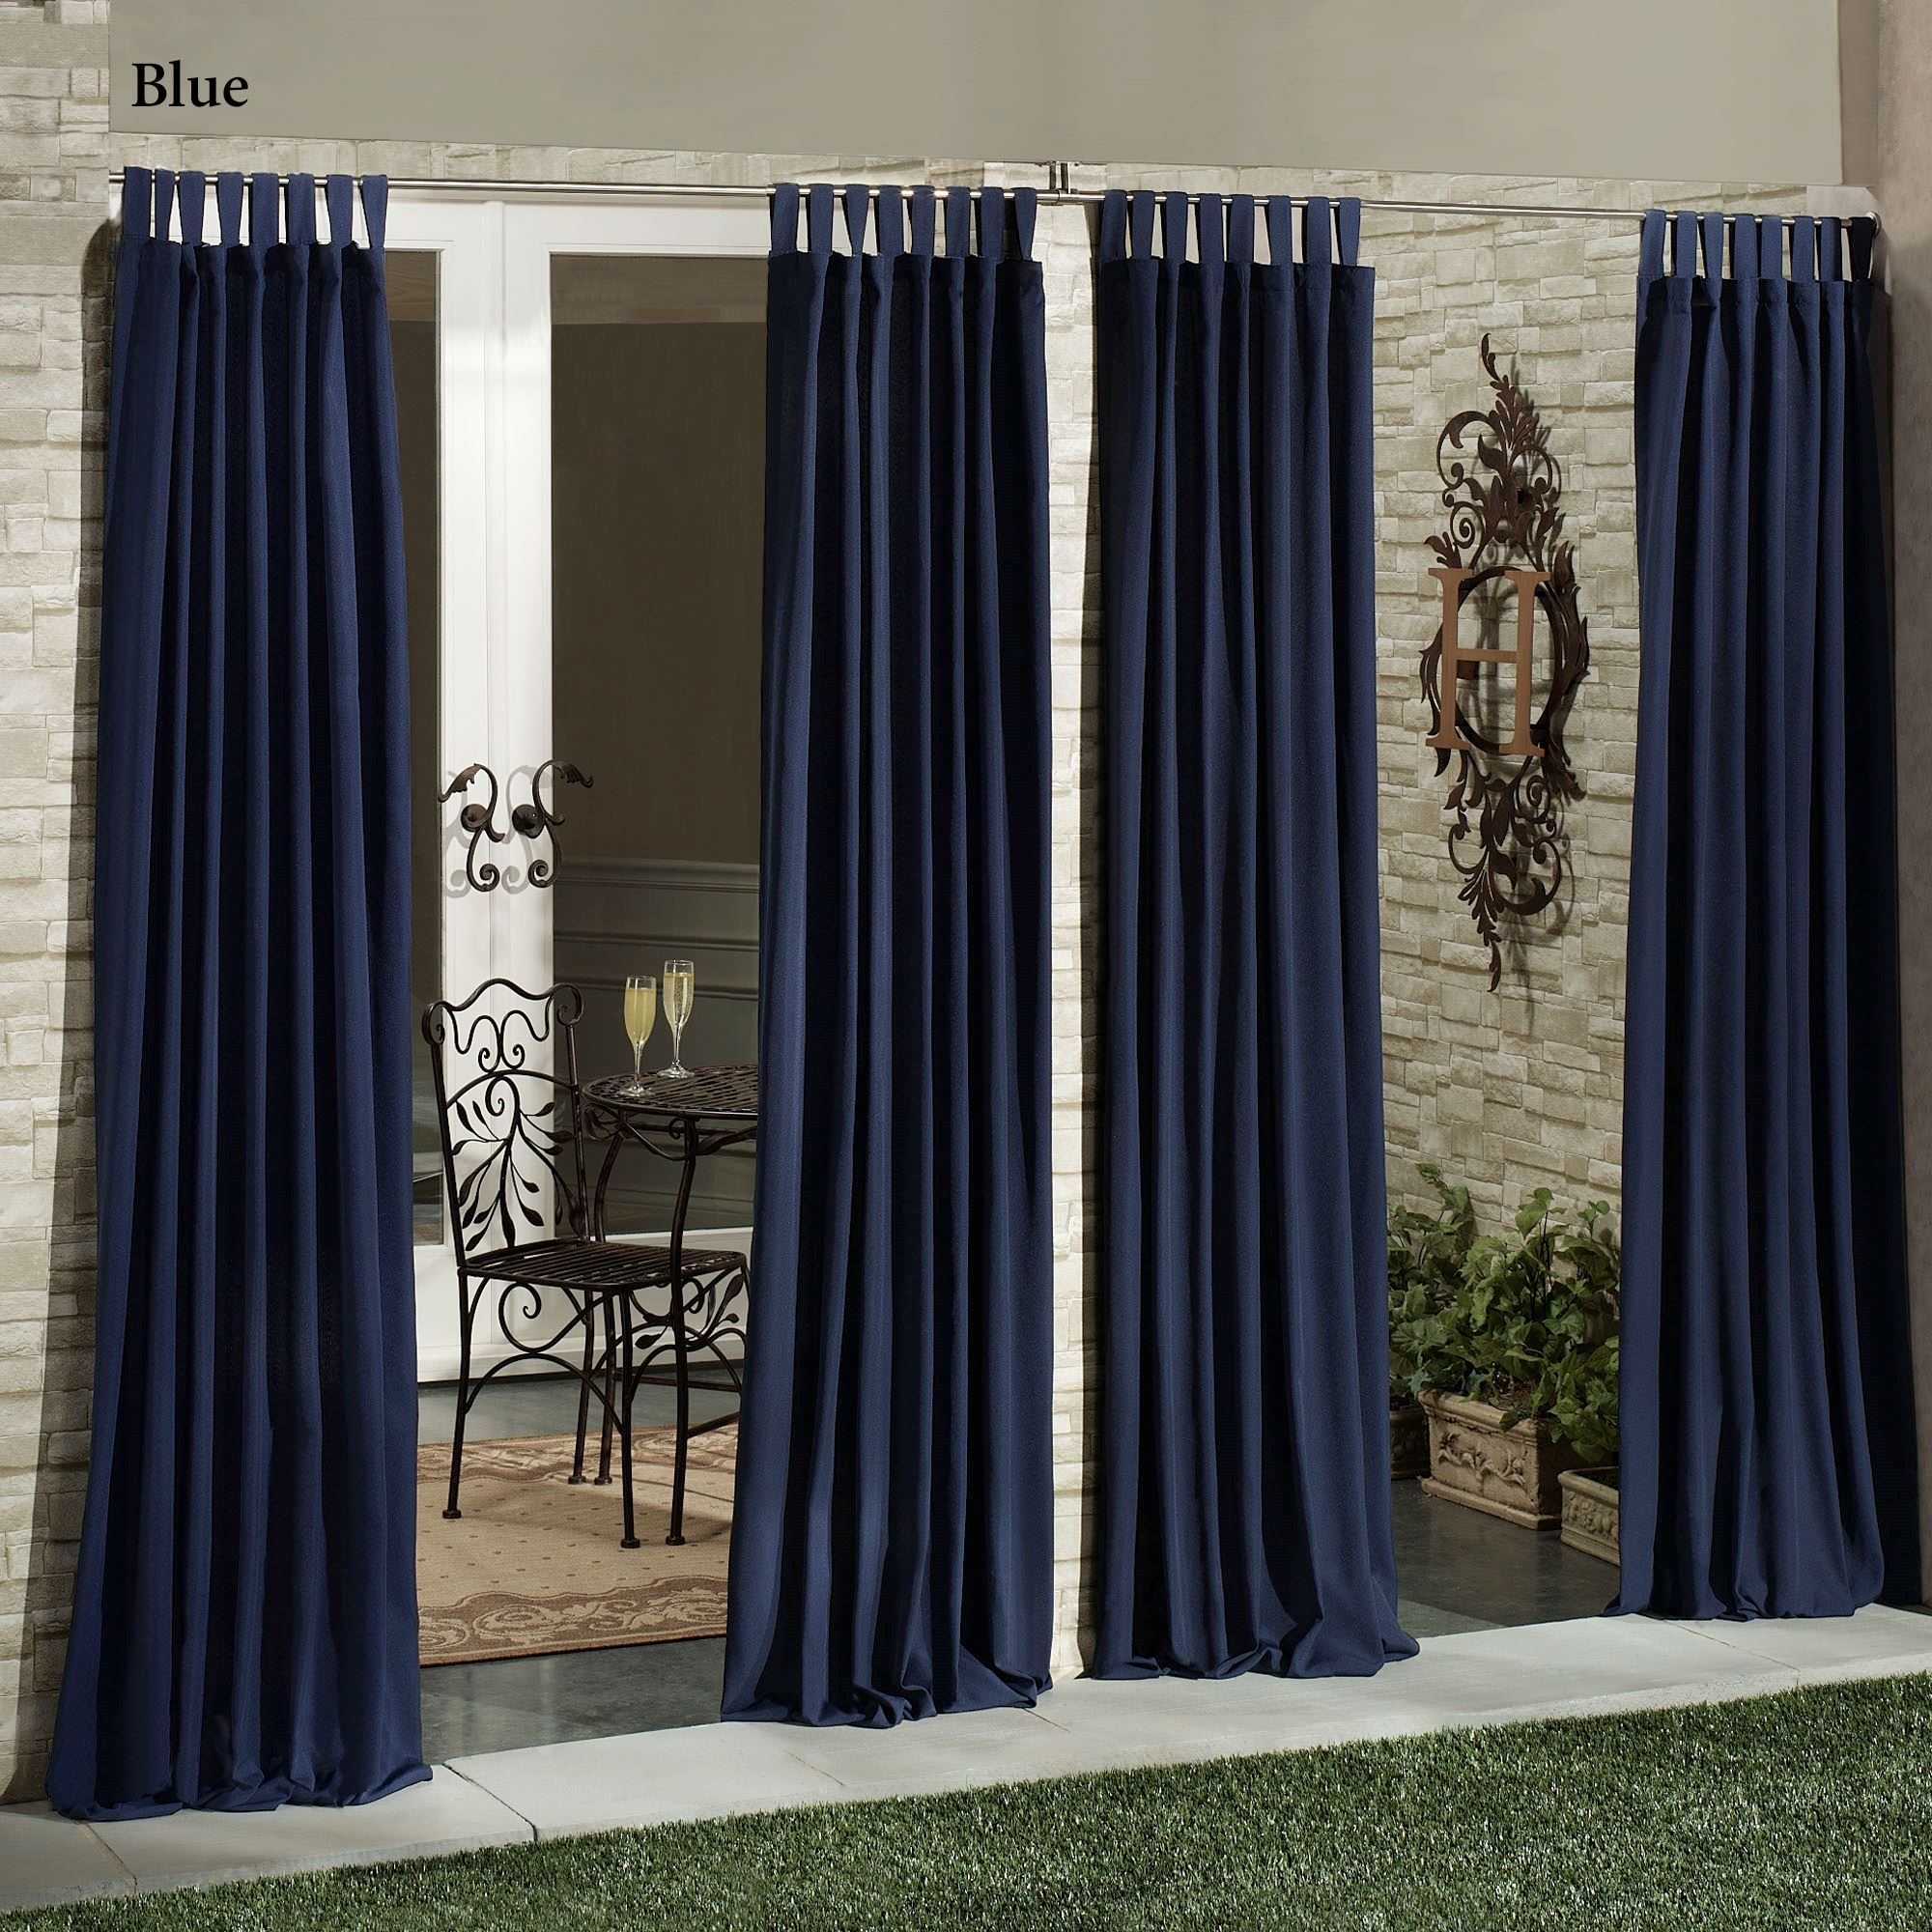 Matine Indoor Outdoor Tab Top Curtain Panels Pertaining To Matine Indoor/outdoor Curtain Panels (View 5 of 20)